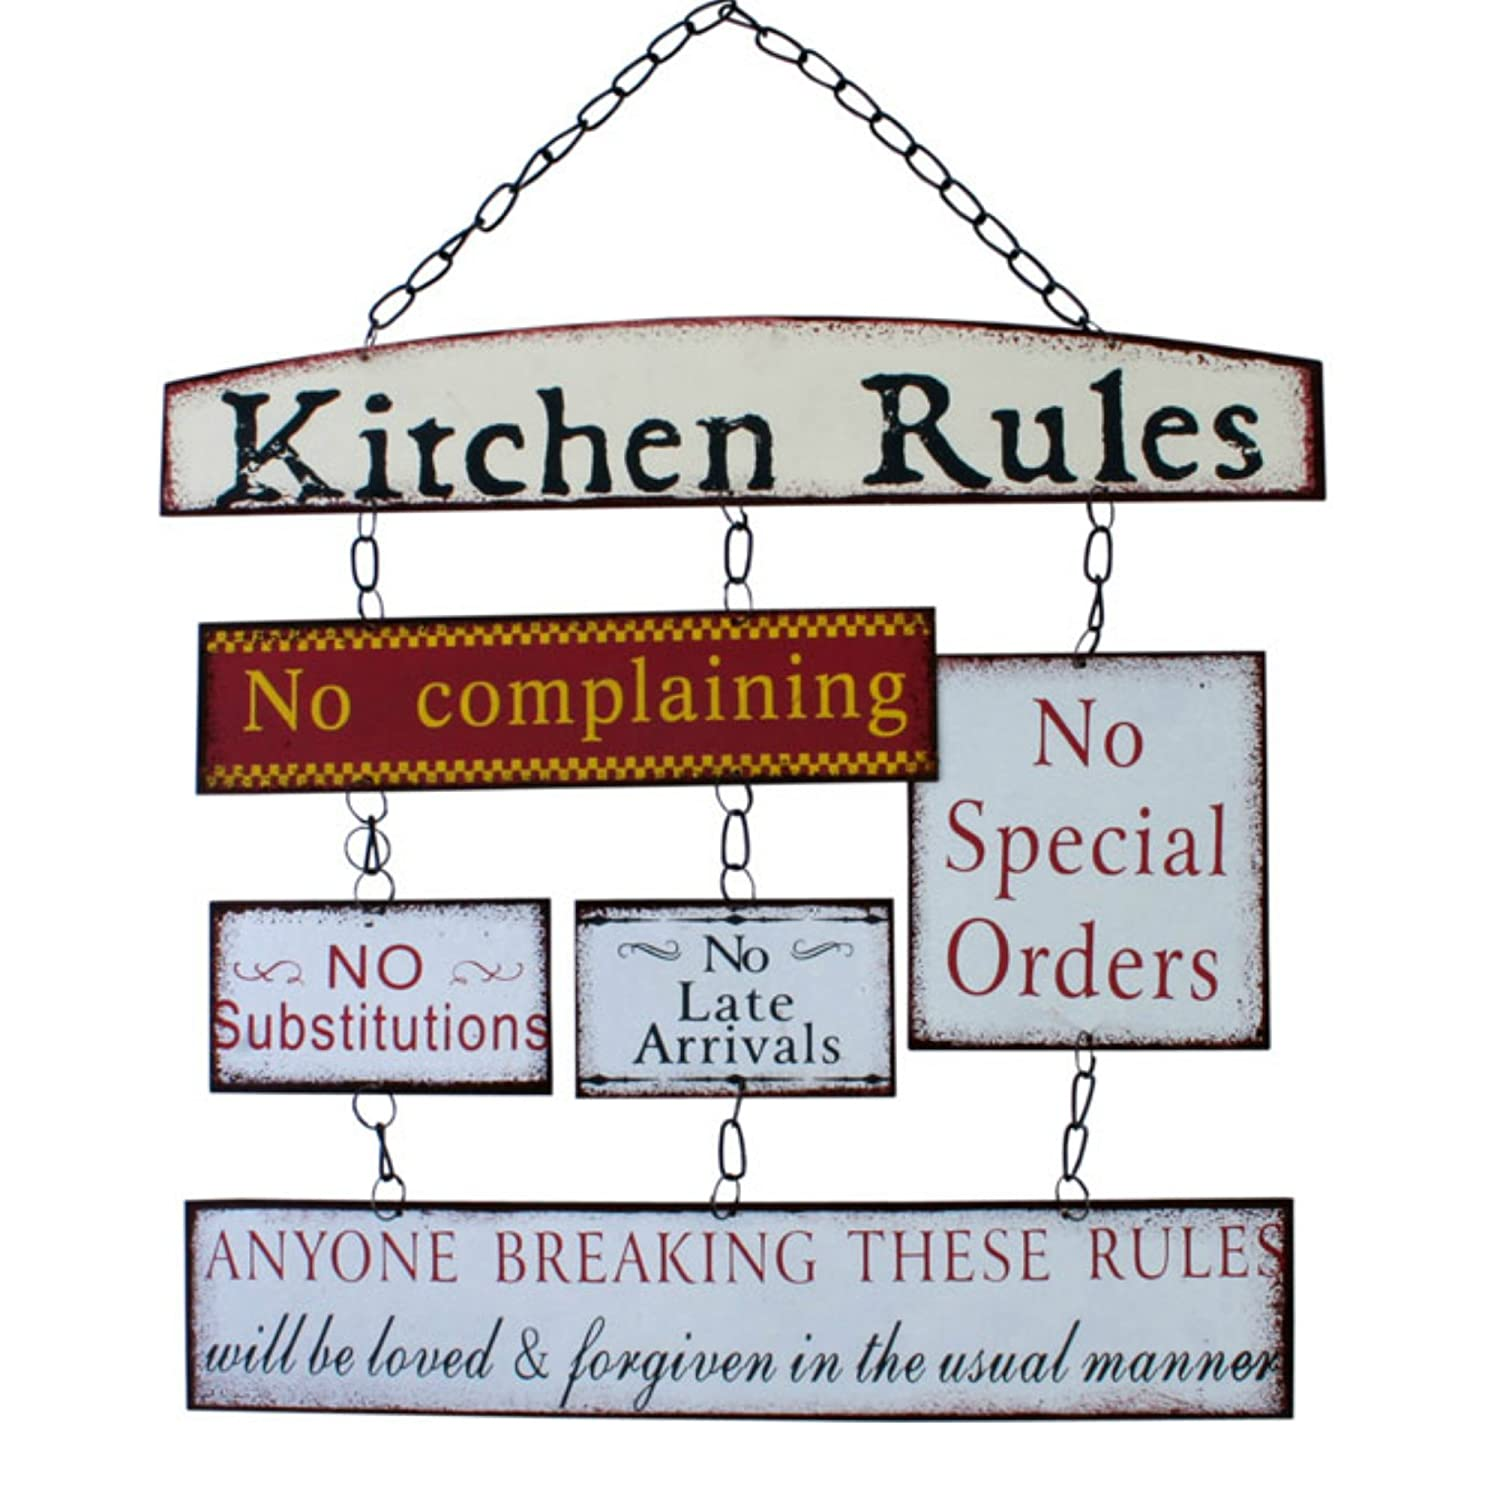 Kitchen Rules Metal Hanging Sign Chic Style Shabby Look Tin Kitchen ...